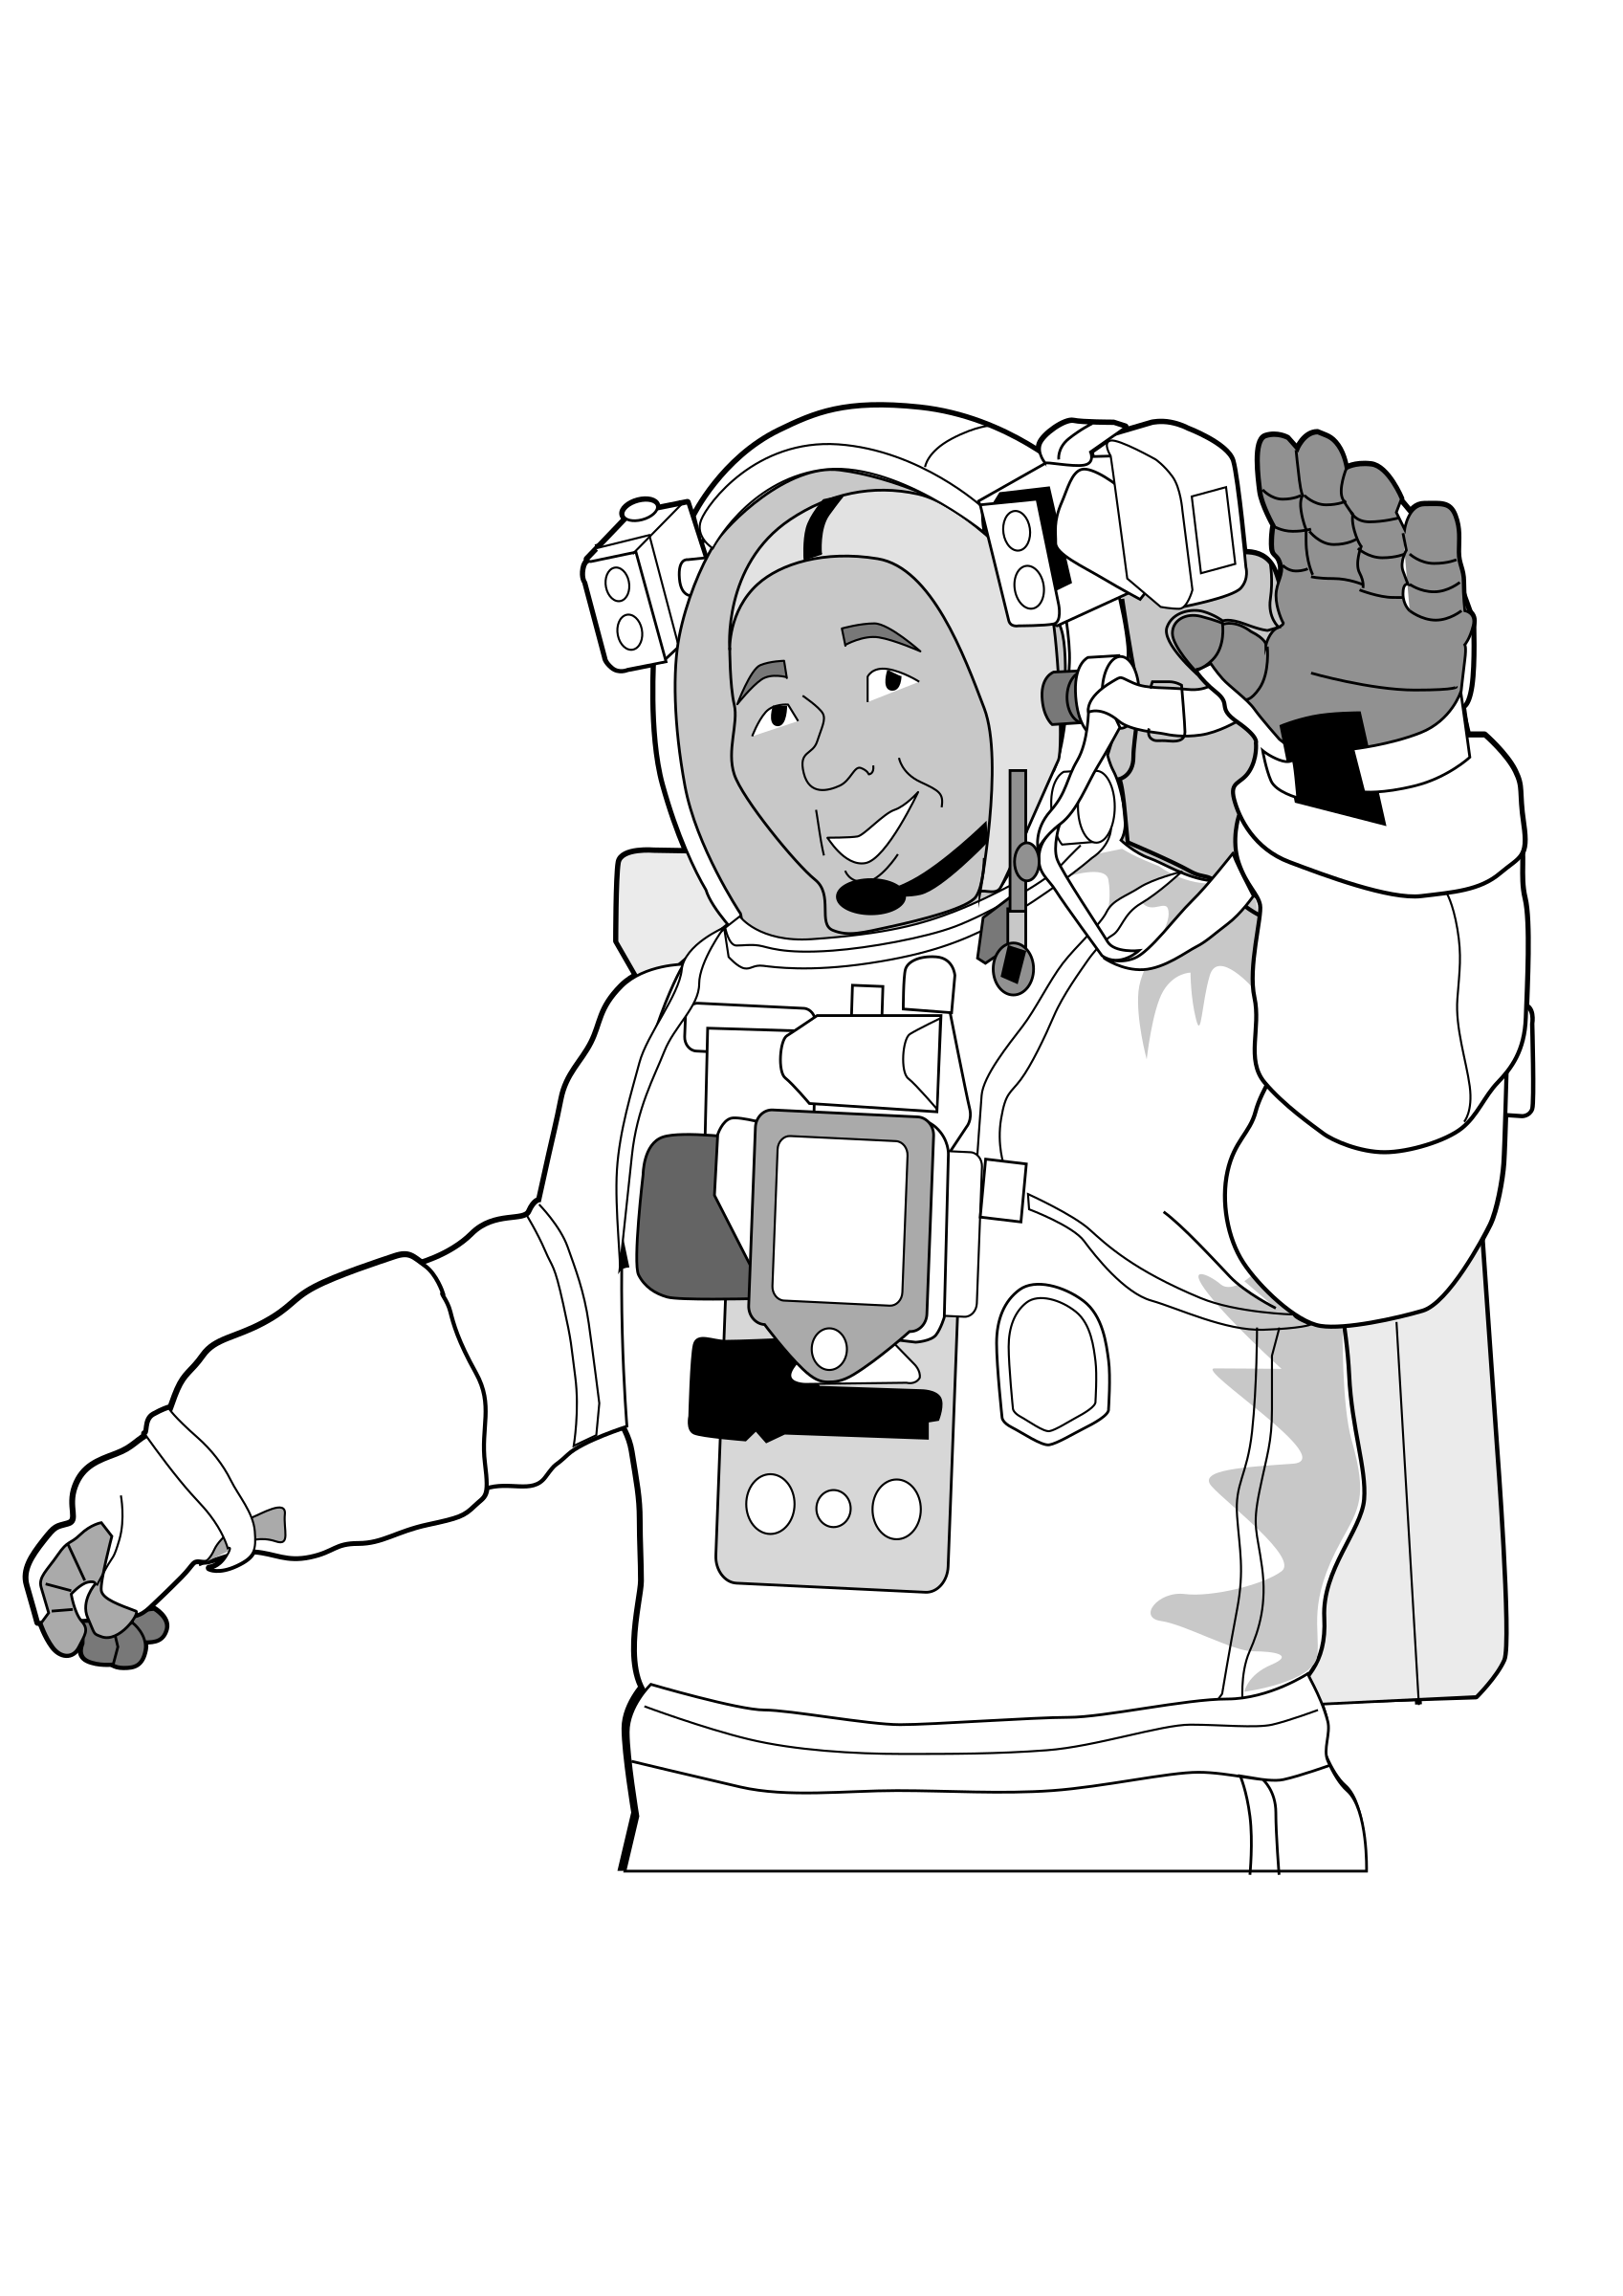 Astronaut iss activity sheet p1 by pianoBrad